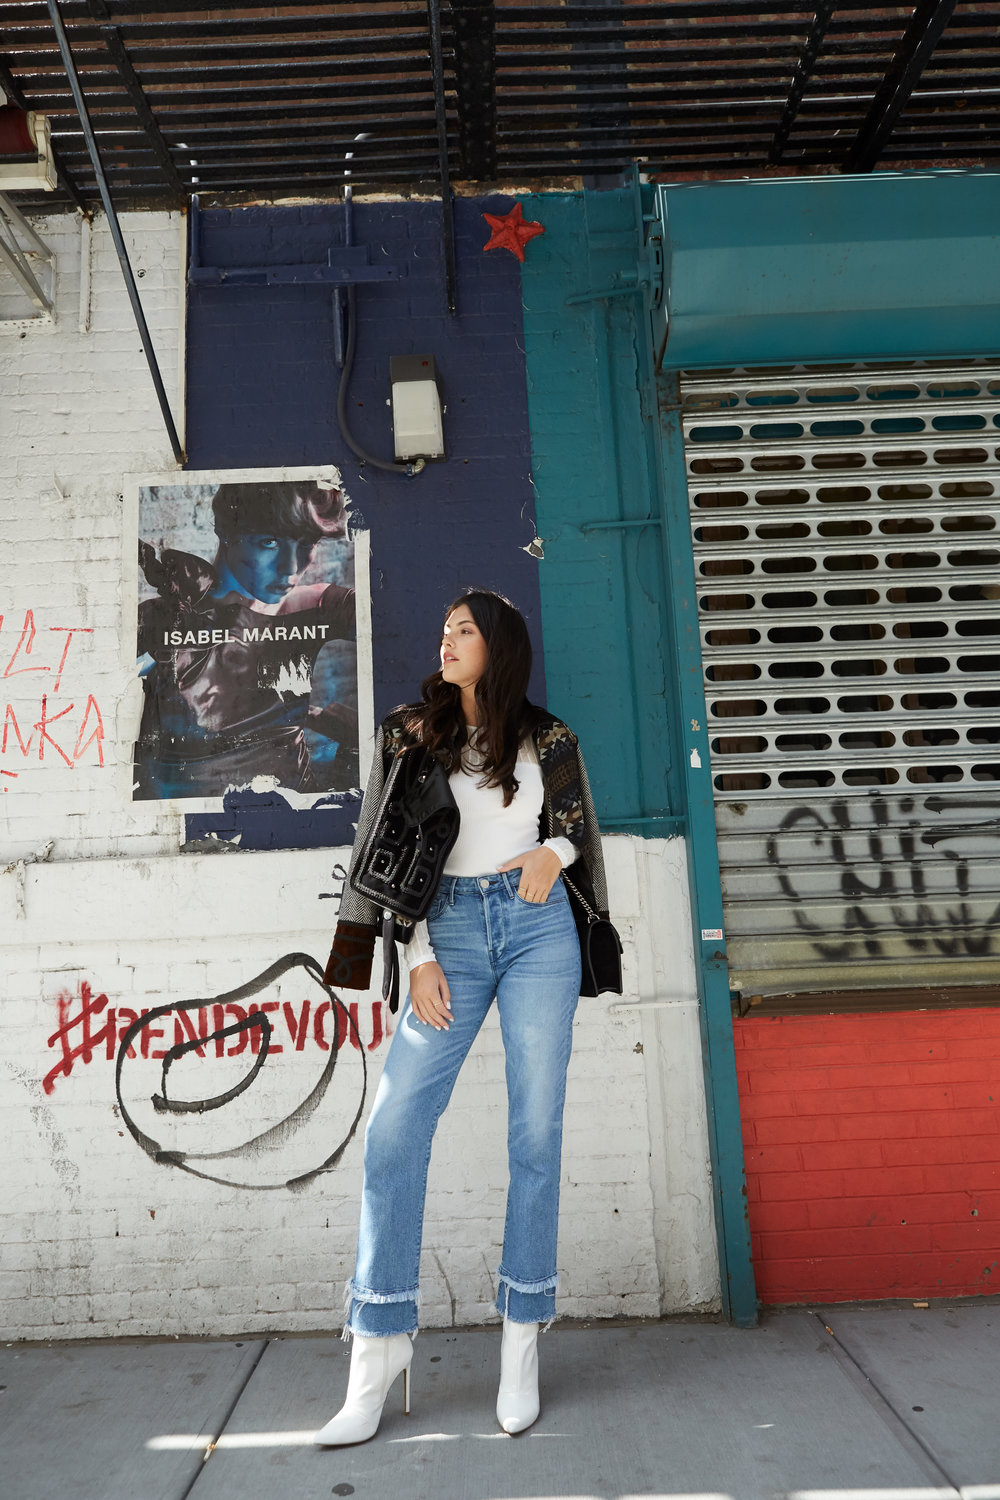 NYFW Recap #1: Julia friedman NYFW street style 3x1 jeans, ronny kobo top for intermix, steve madden white booties.